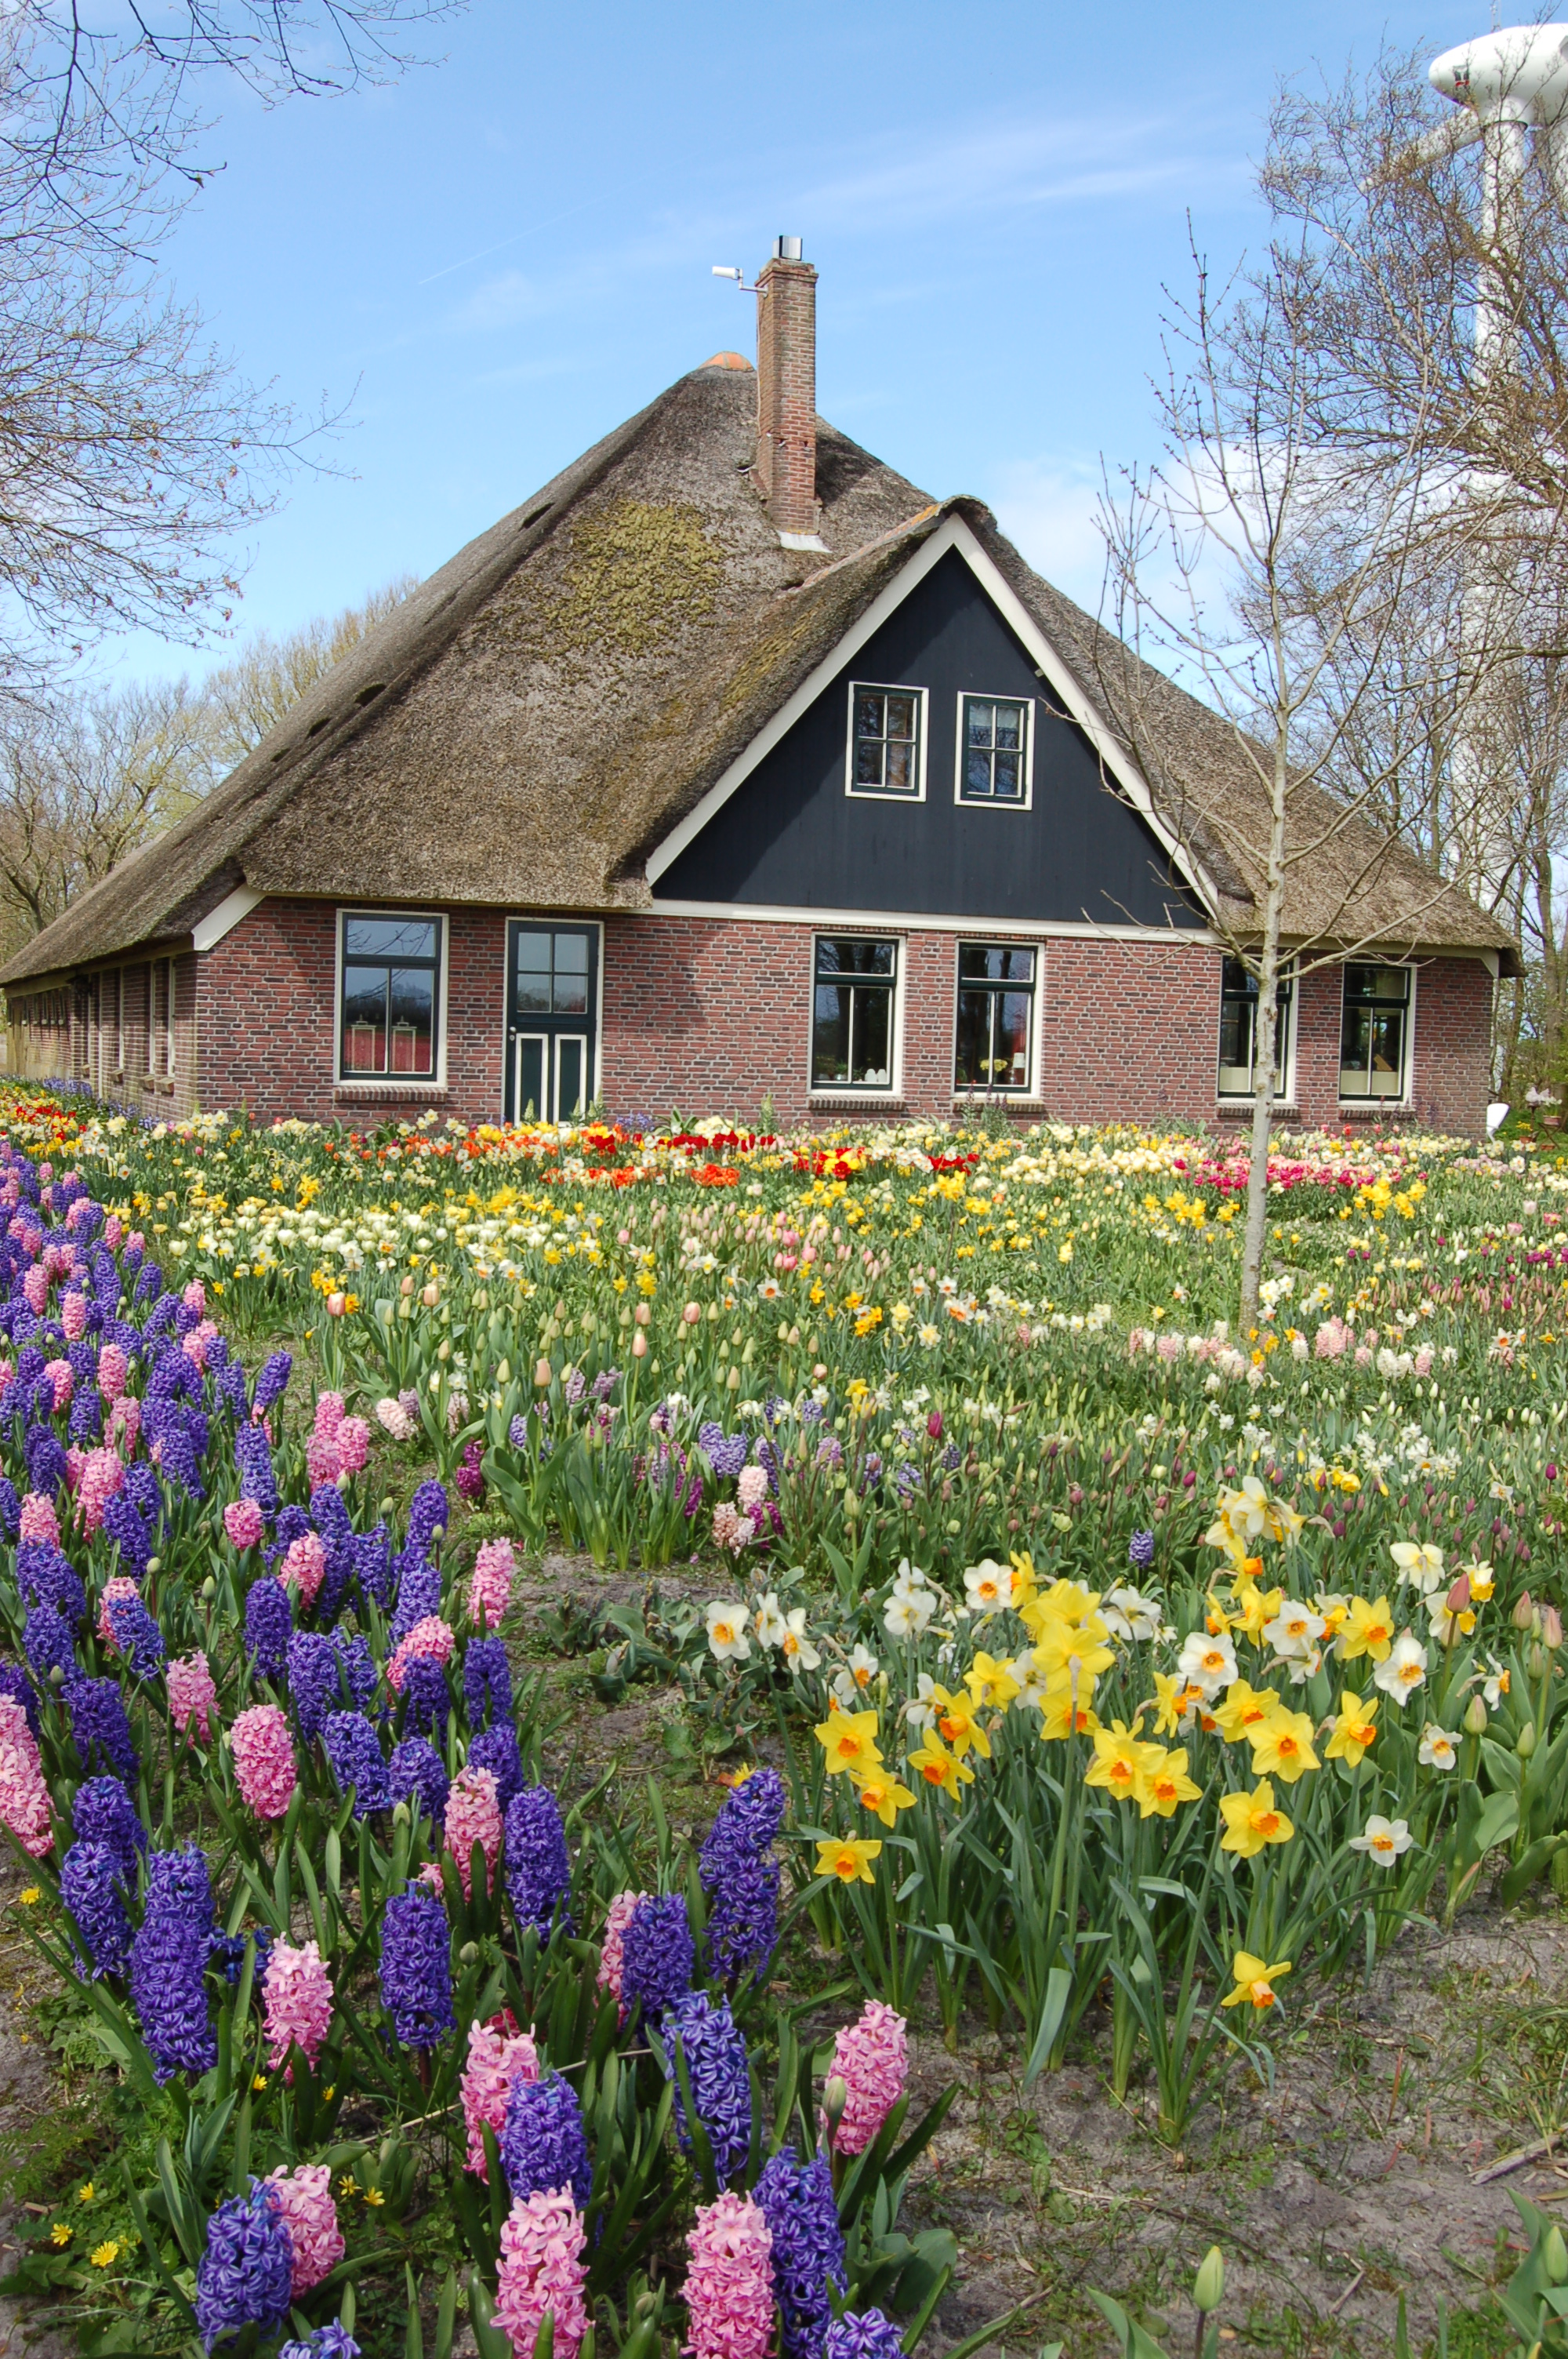 Staggering Our Dutch Carlos Van Der Surrounded His Home Show What Flowerslook Like Our Springtime Visit To Holland Flower Blog Idea Is To Inspire Visitors And houzz-03 Holland Bulb Farms